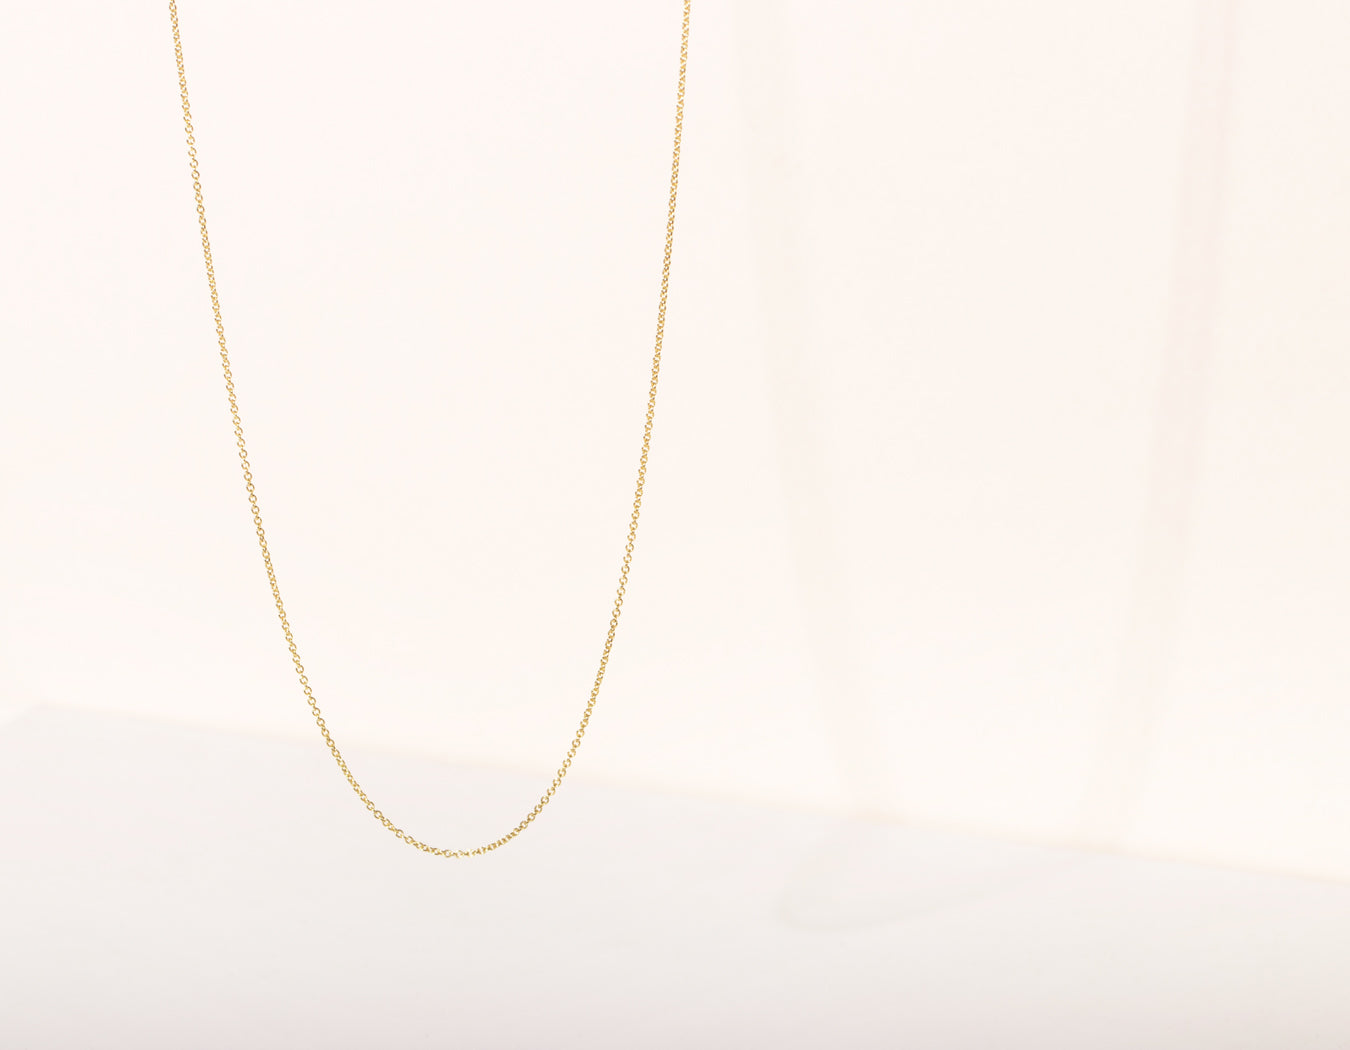 Vrai and Oro Simple Oval Link Chain 14k Solid yellow gold